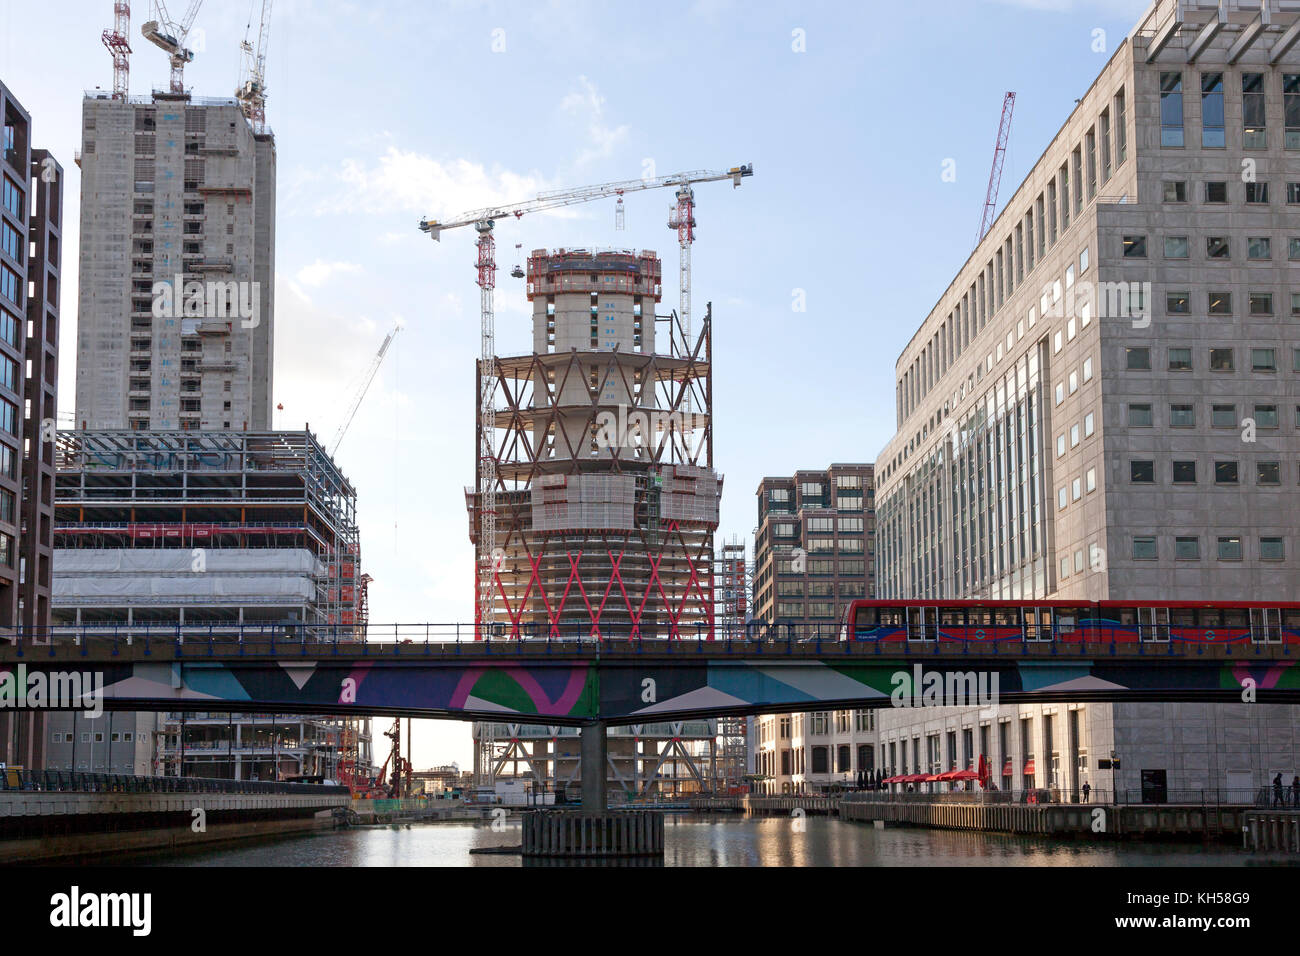 Docklands Light Railway and new building under construction at Heron Quays, Canary Wharf, London - Stock Image